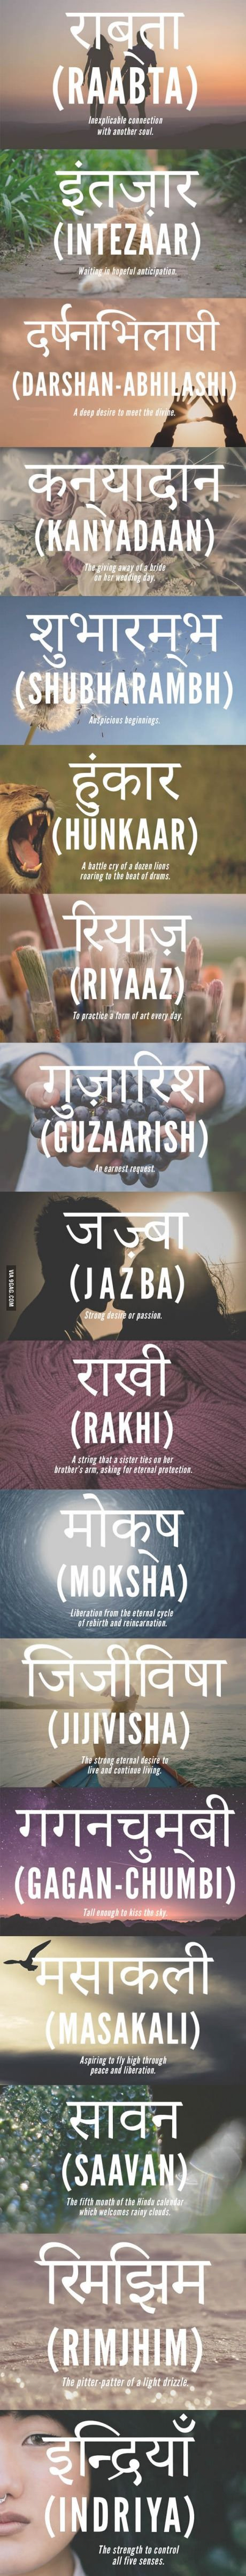 17 Beautifully Untranslatable Hindi Words You Should Add To Your Vocabulary Right Now..love masakali